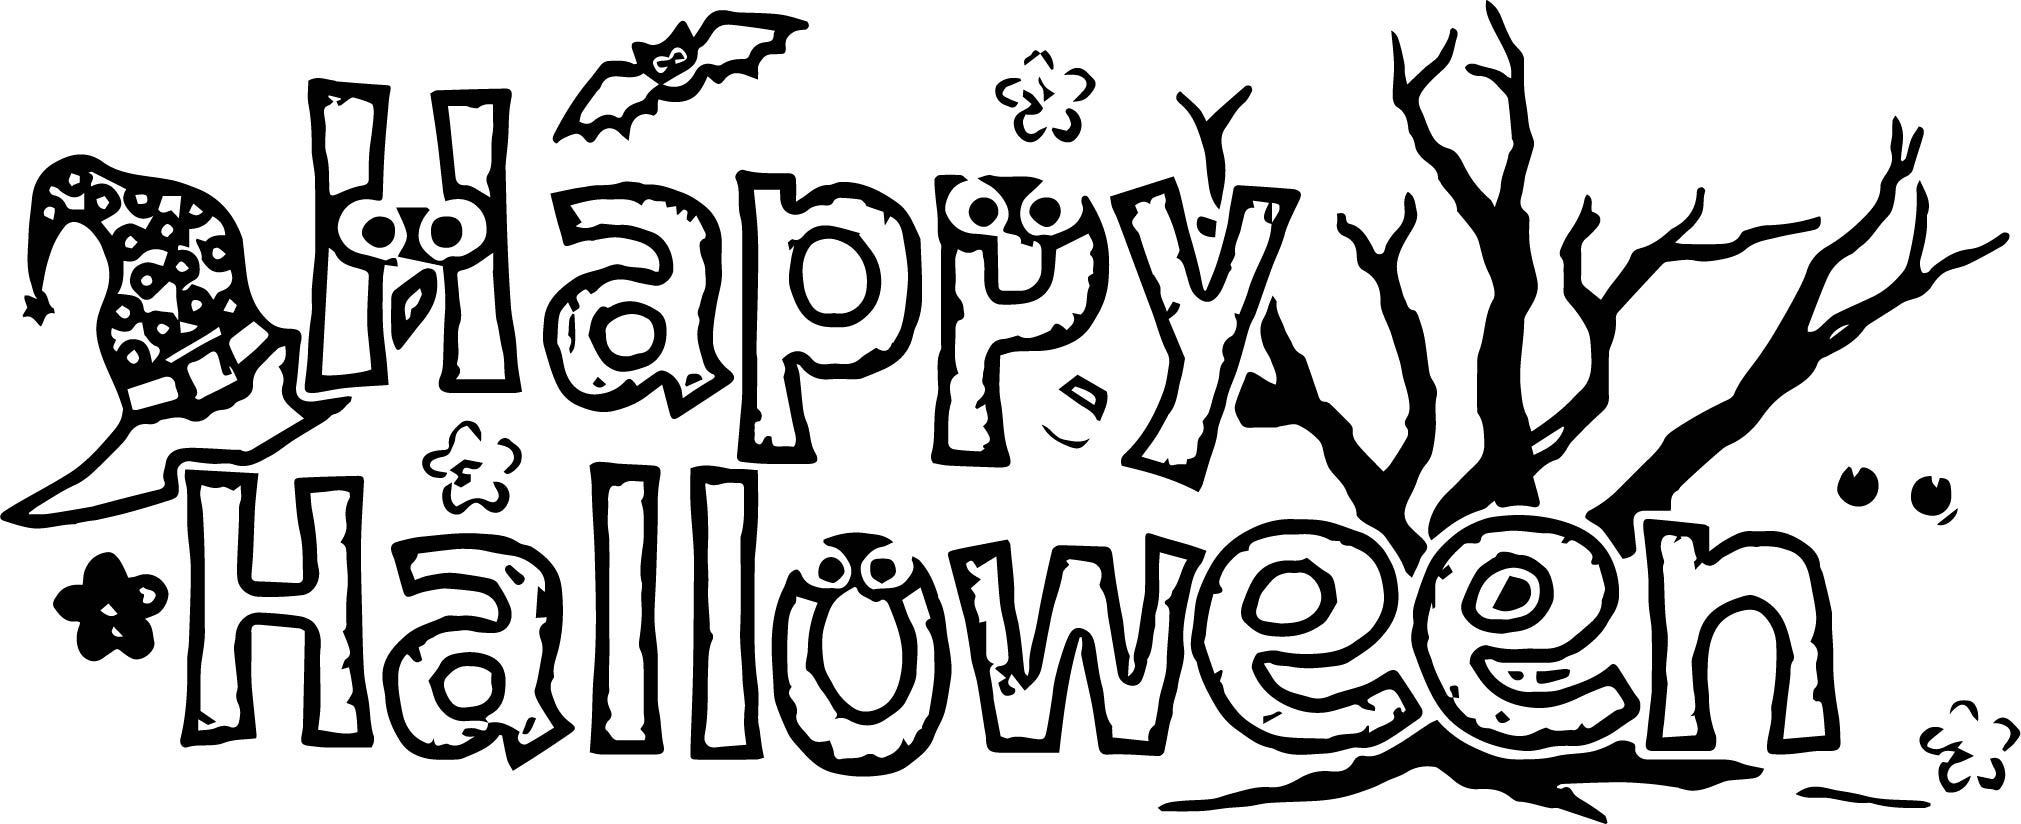 Halloween Emma Coloring Page